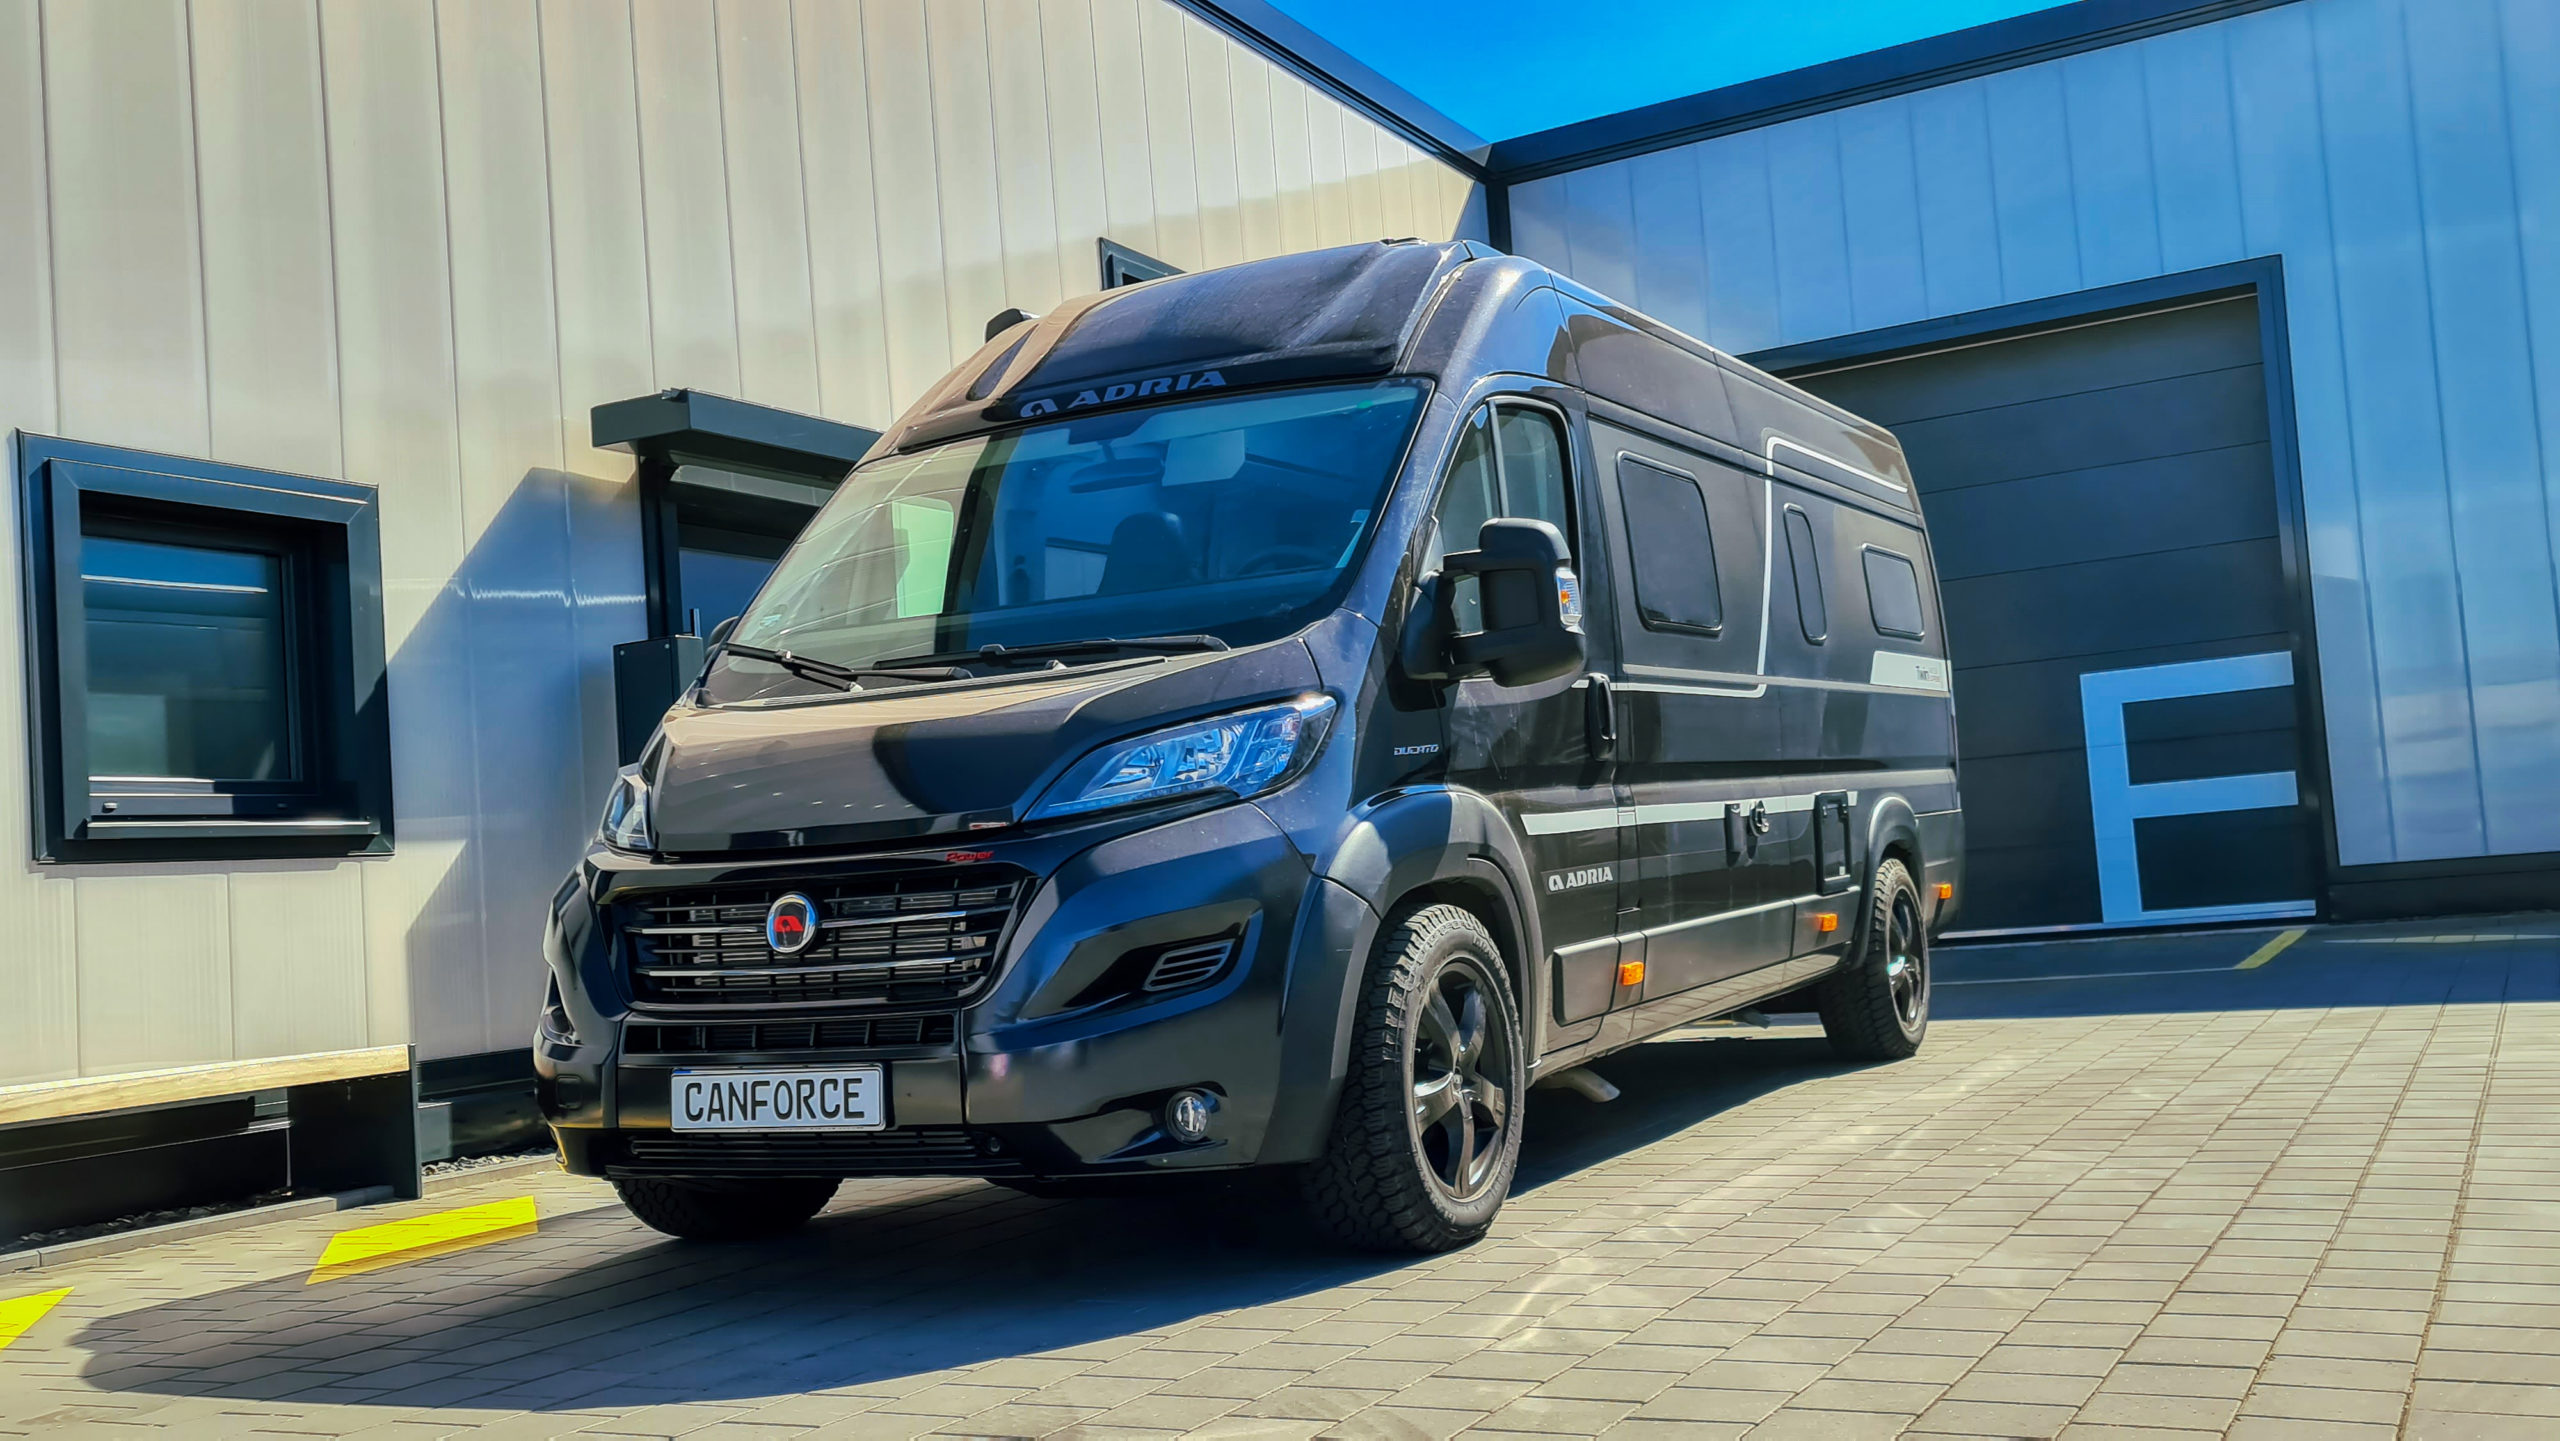 Adria 640 SLB Supreme Camper Alarmanlage | Testsieger Alarmanlage Finesell Ducato 180 PS Power 9-Gang Automatik